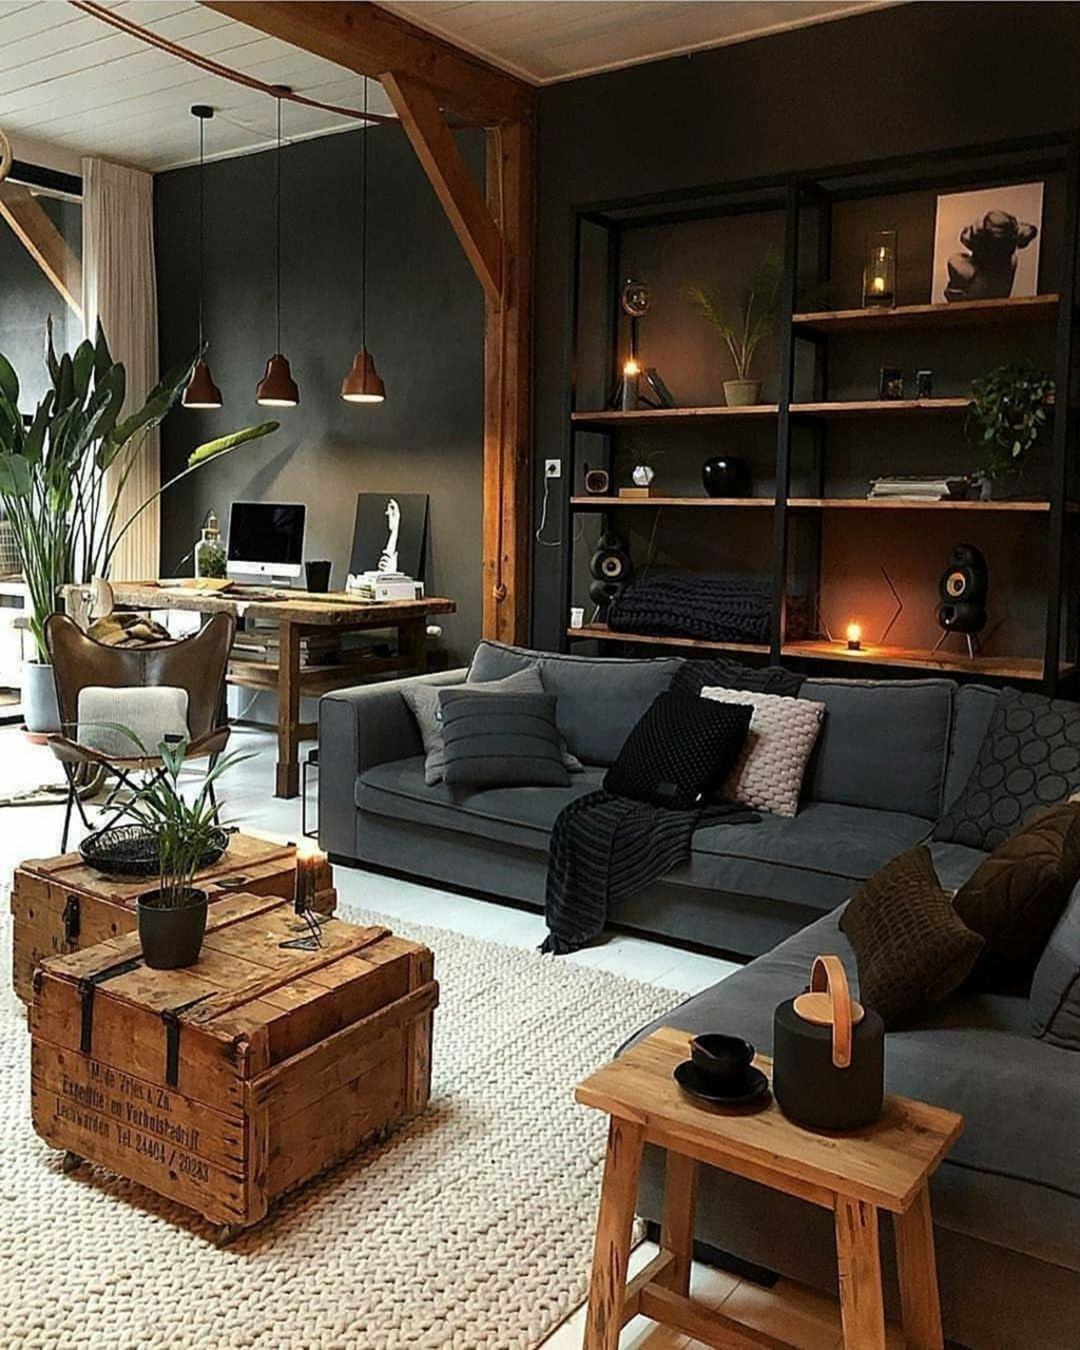 10 Beautiful Industrial Living Room Ideas For Cozy Home In 2020